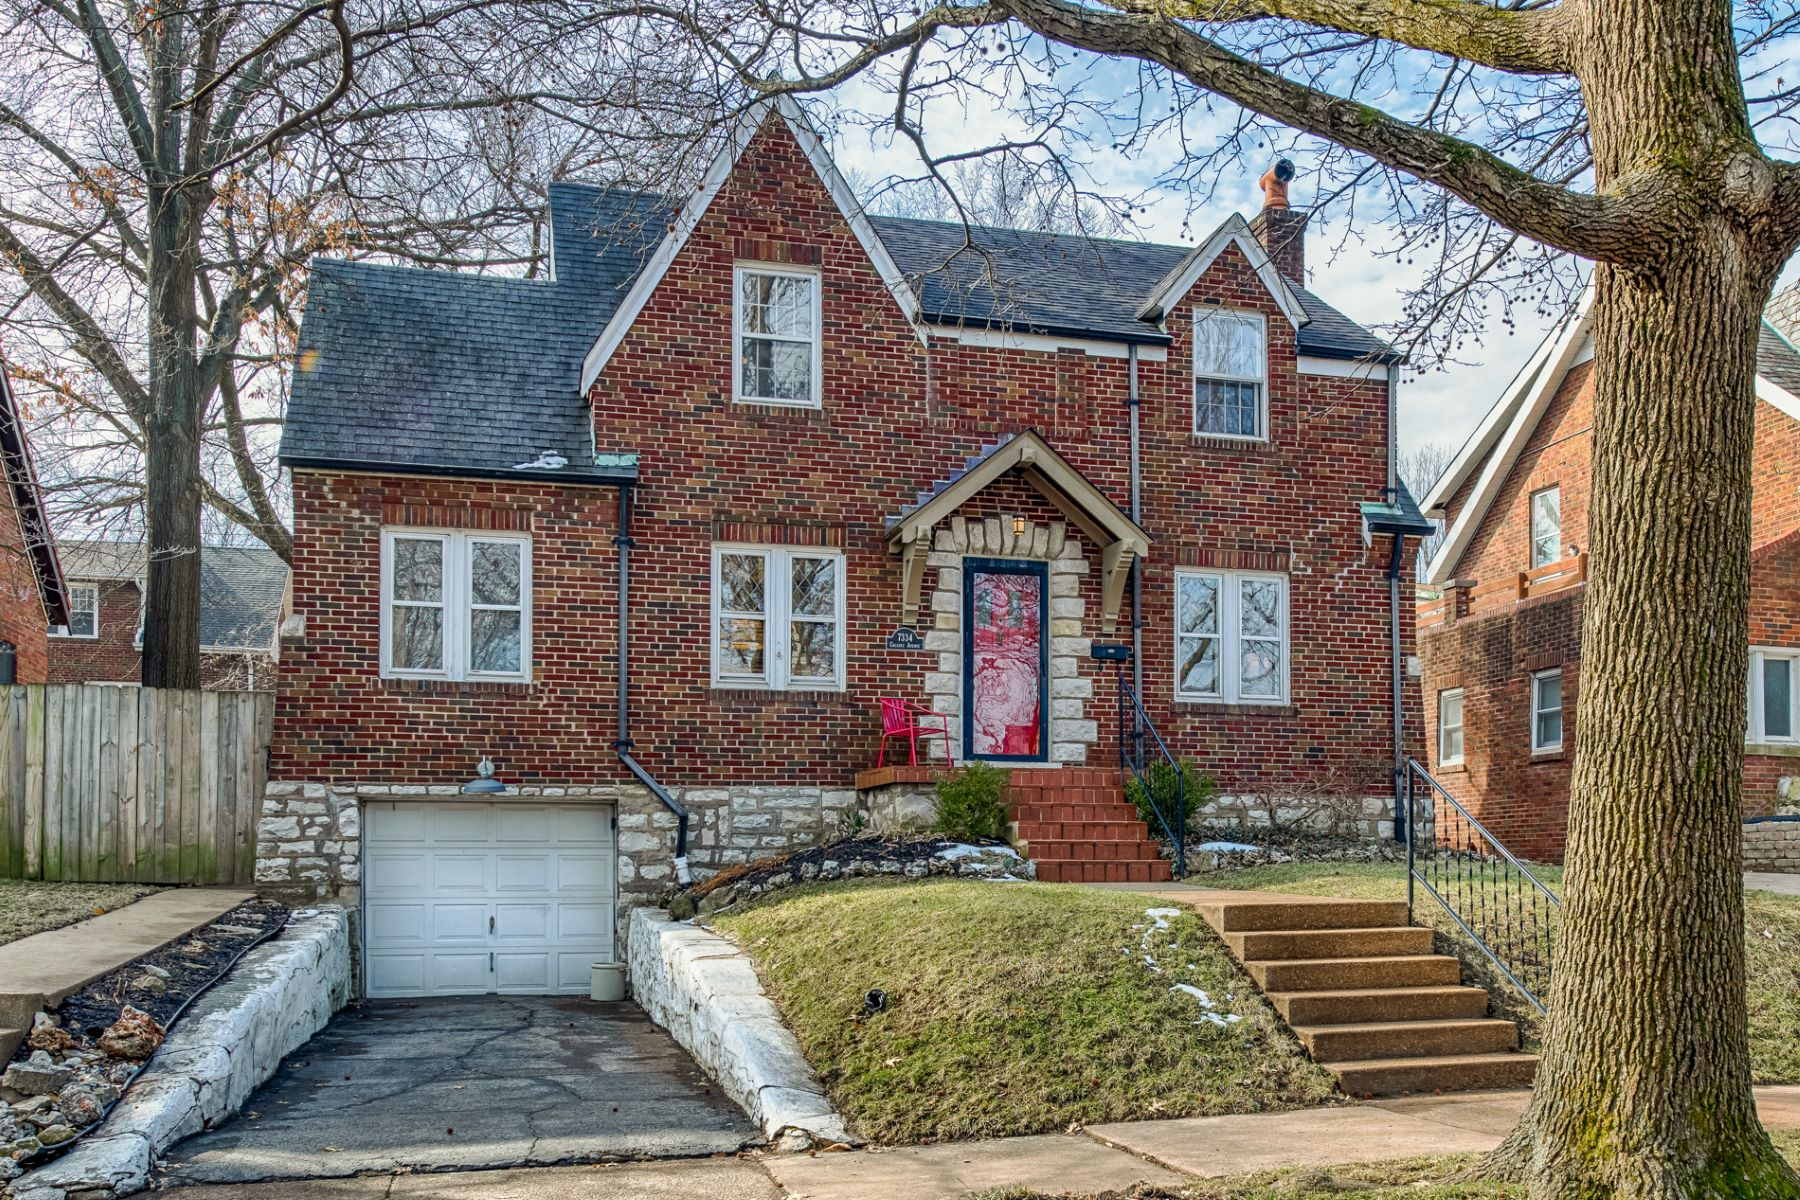 Single Family Home for Sale at Colgate Avenue, University City, MO 63130 7334 Colgate Avenue University City, Missouri 63130 United States